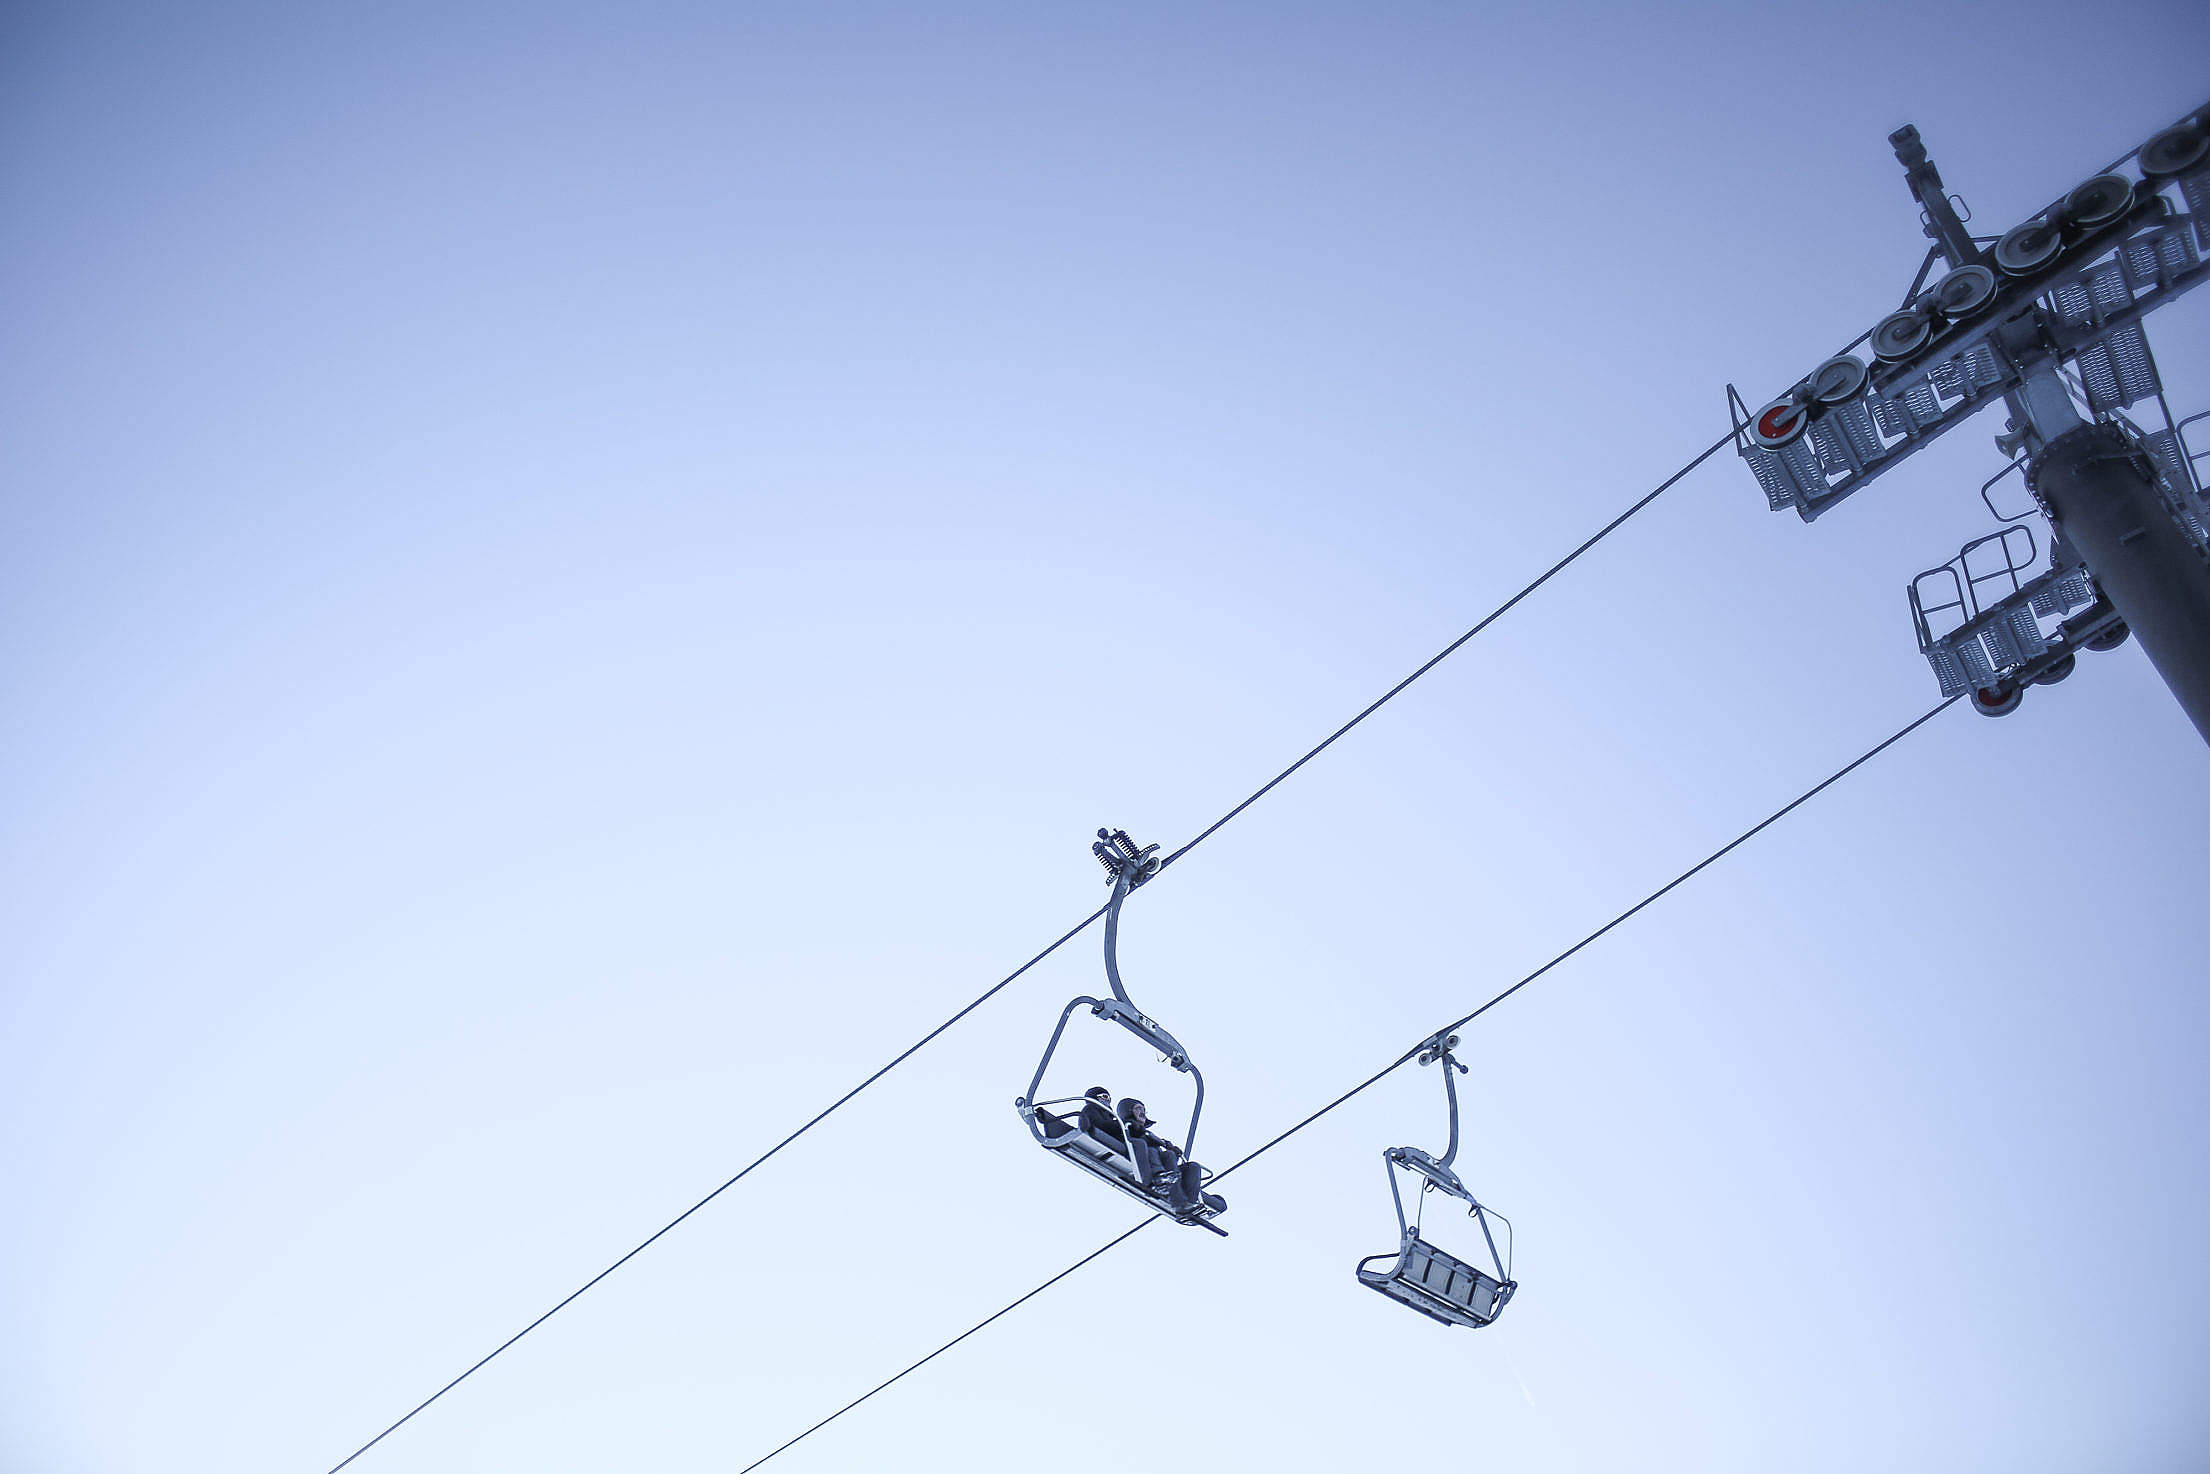 Sky and Ski Lift Minimal Free Stock Photo